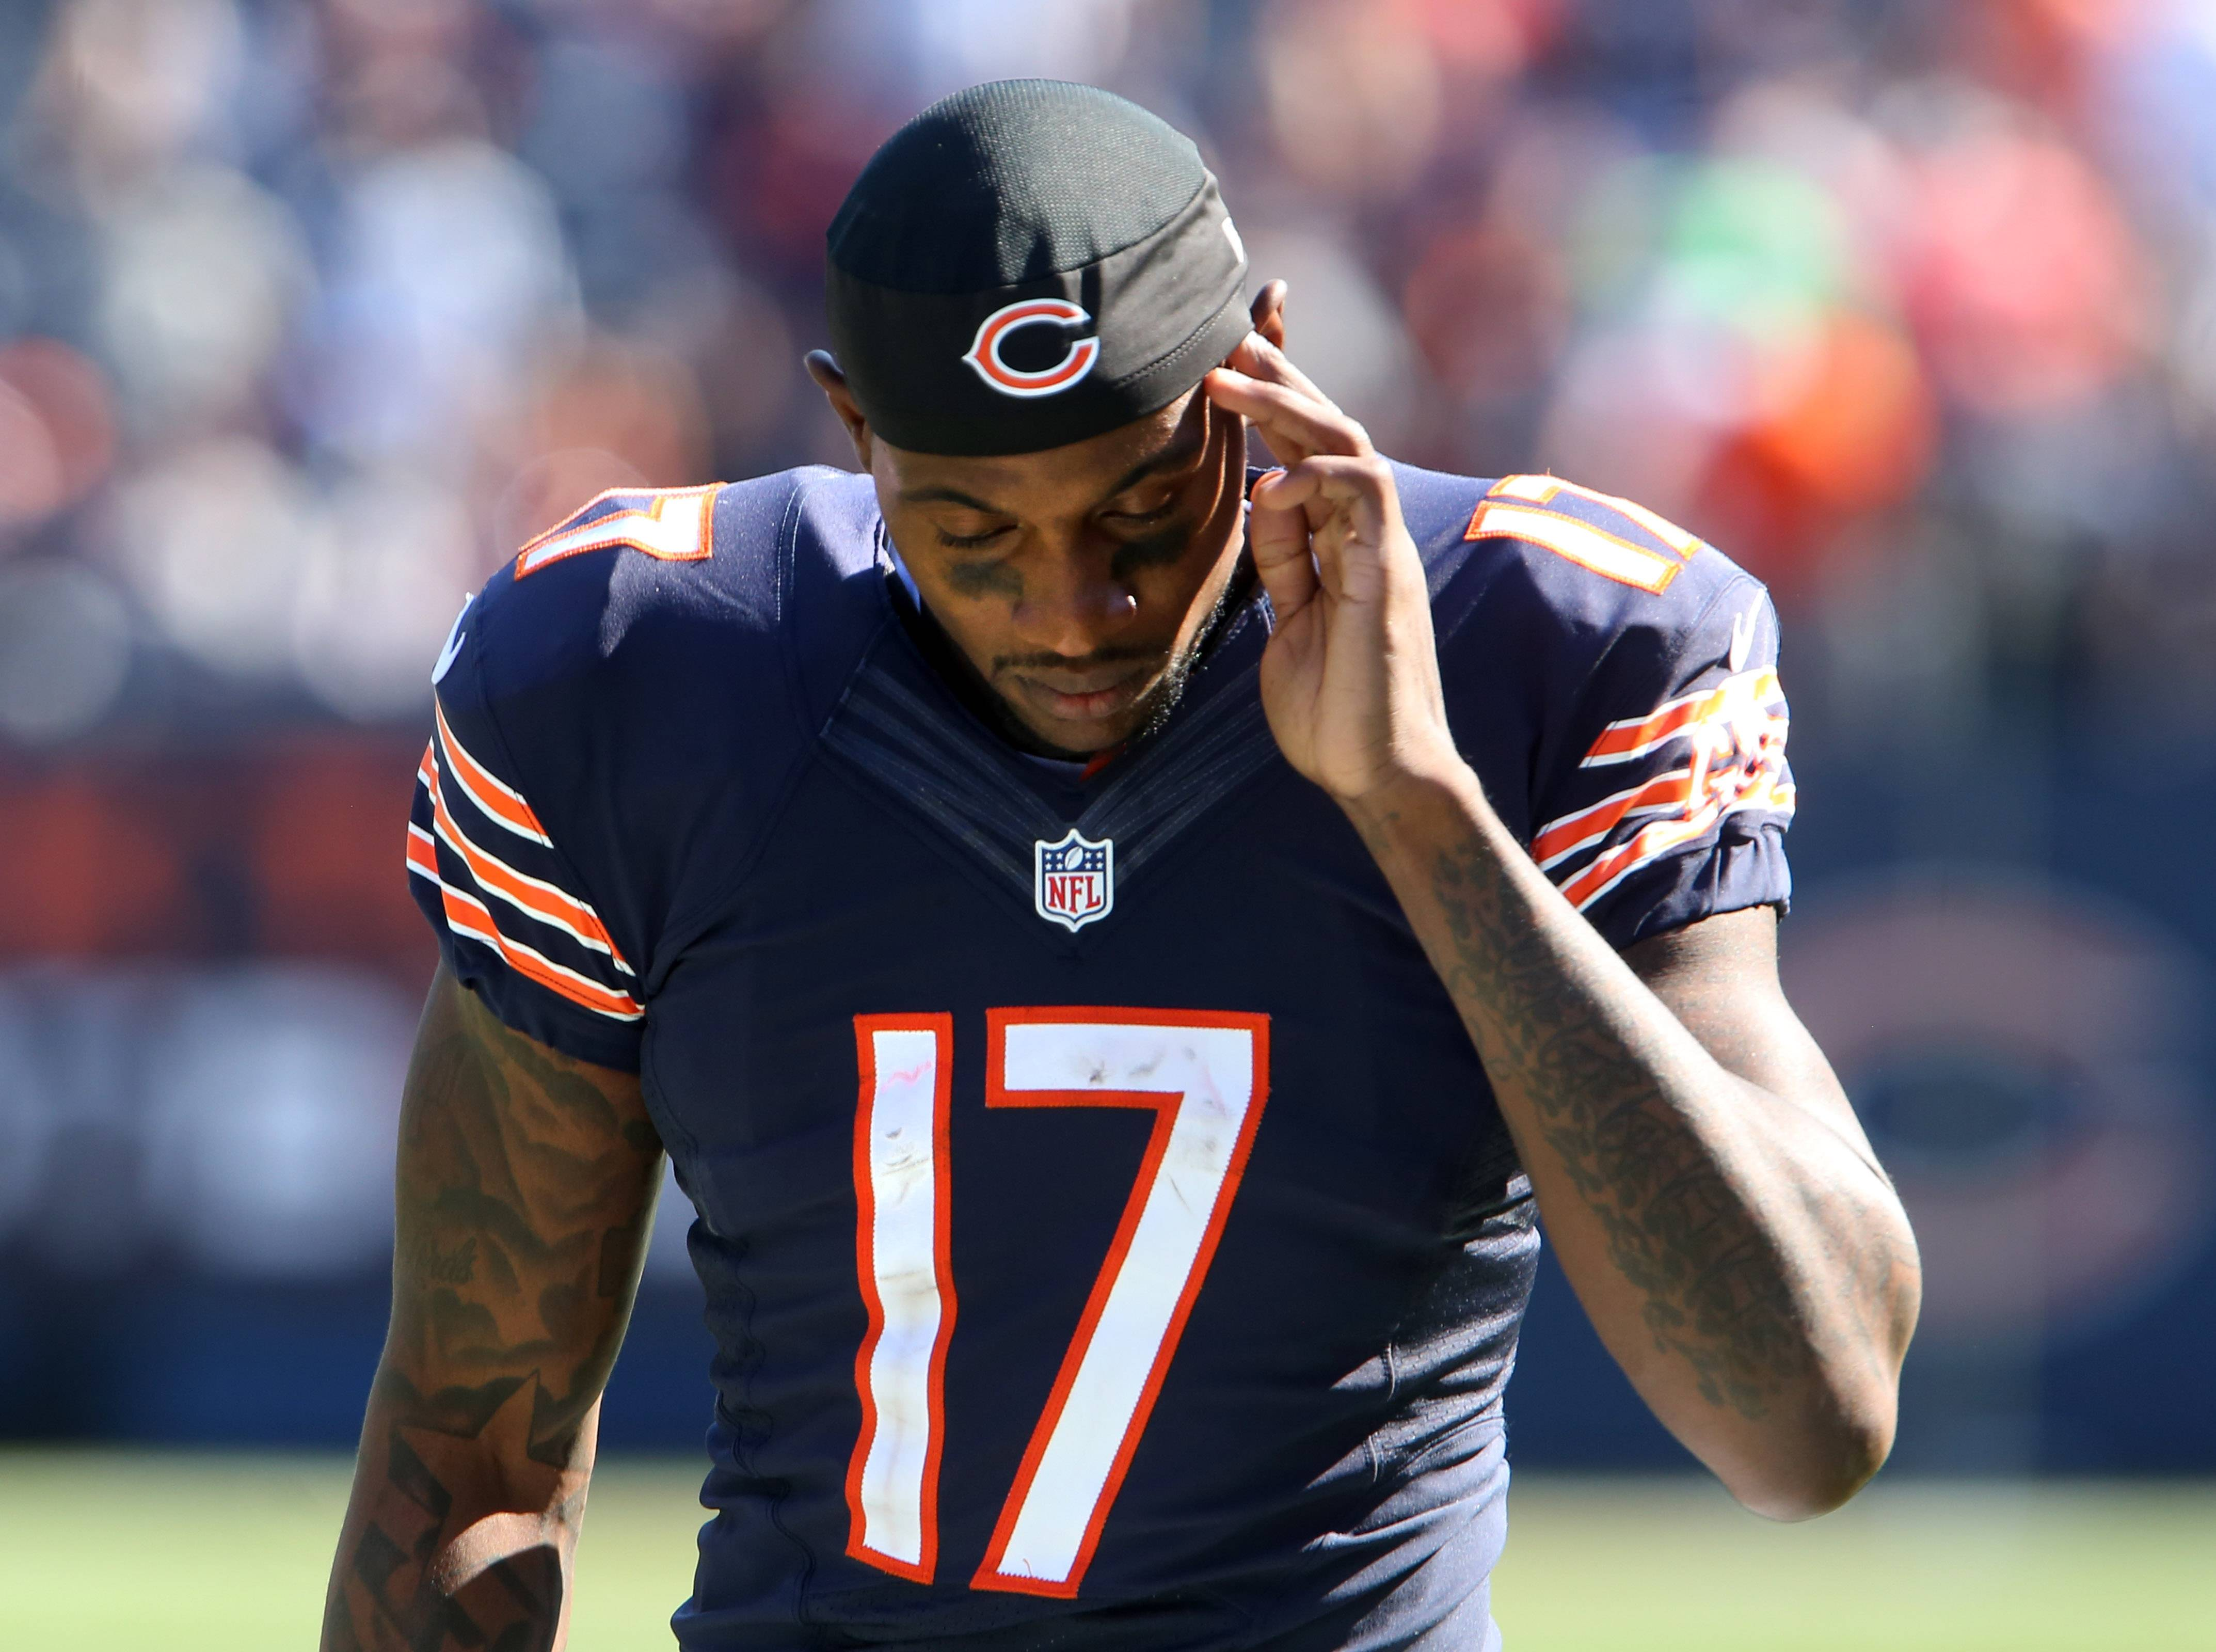 Chicago Bears wide receiver Alshon Jeffery walks off the field after the Bears lose to Buffalo Bills 23-20 at Soldier Field on Sunday.